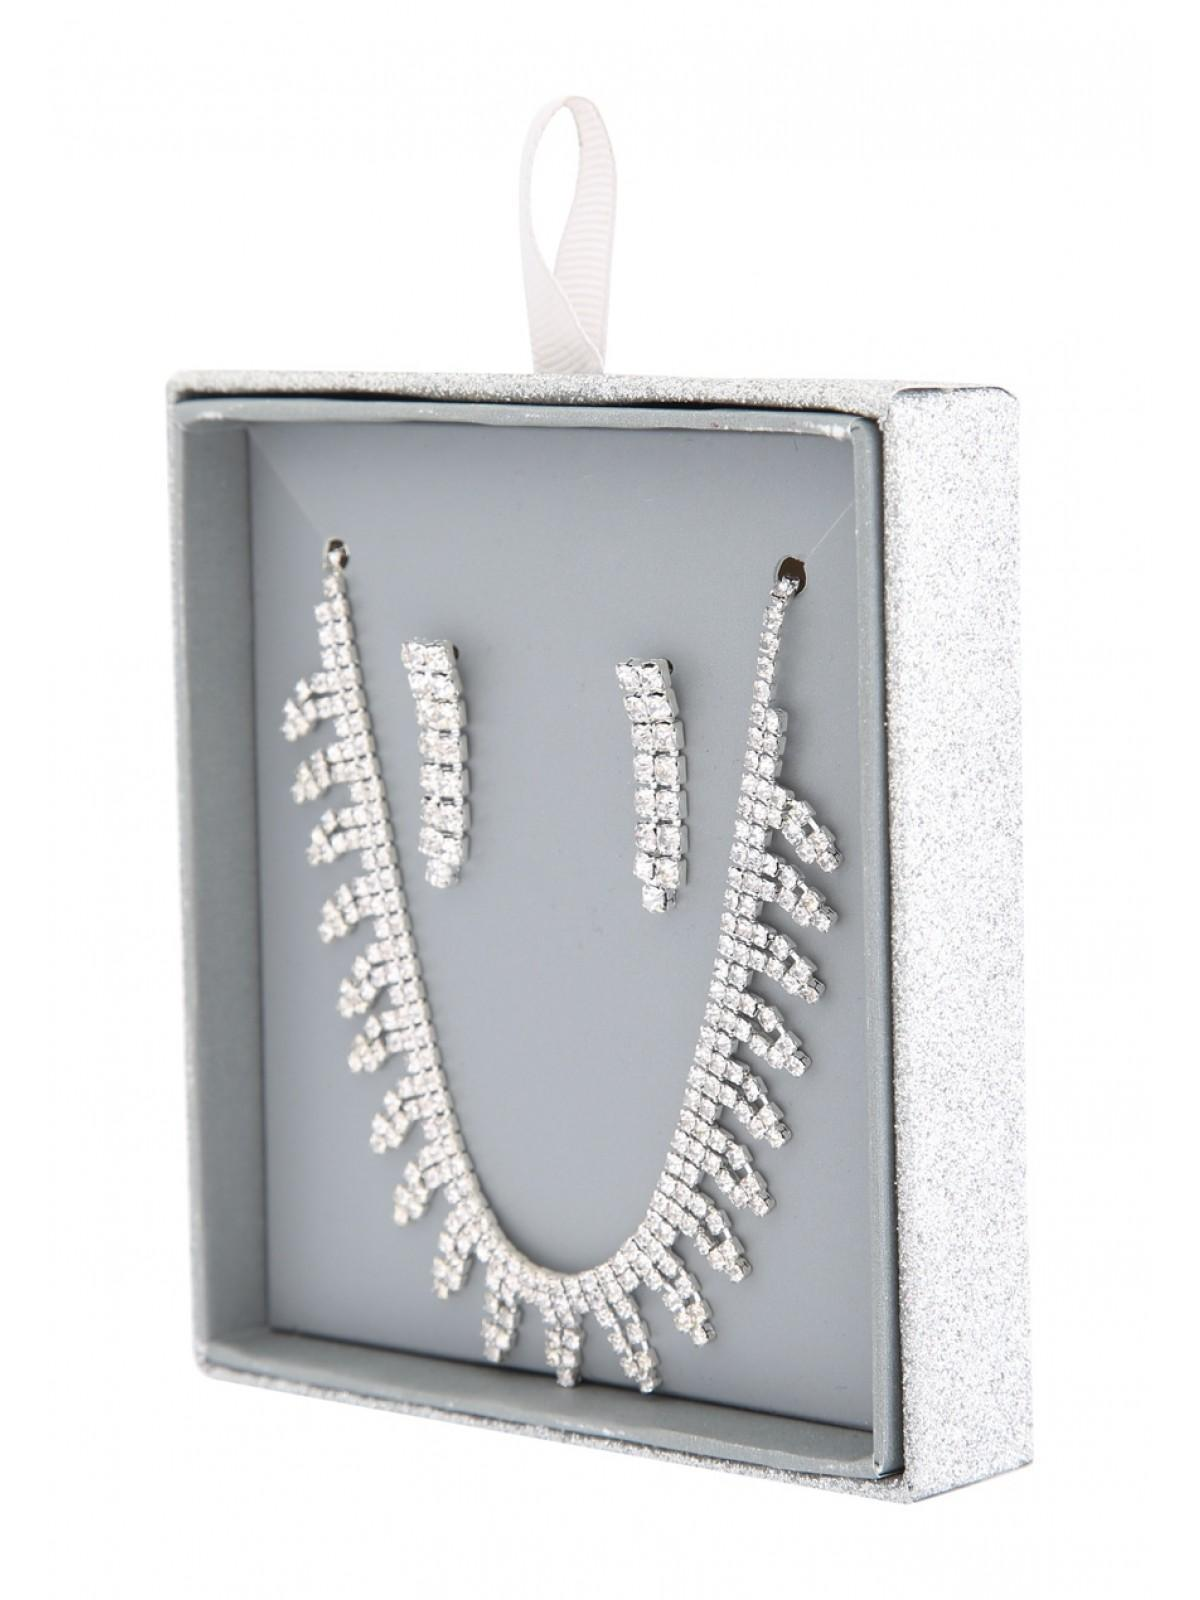 This beautiful diamante necklace and earring set is perfect for those who love to be glam and glitzy.